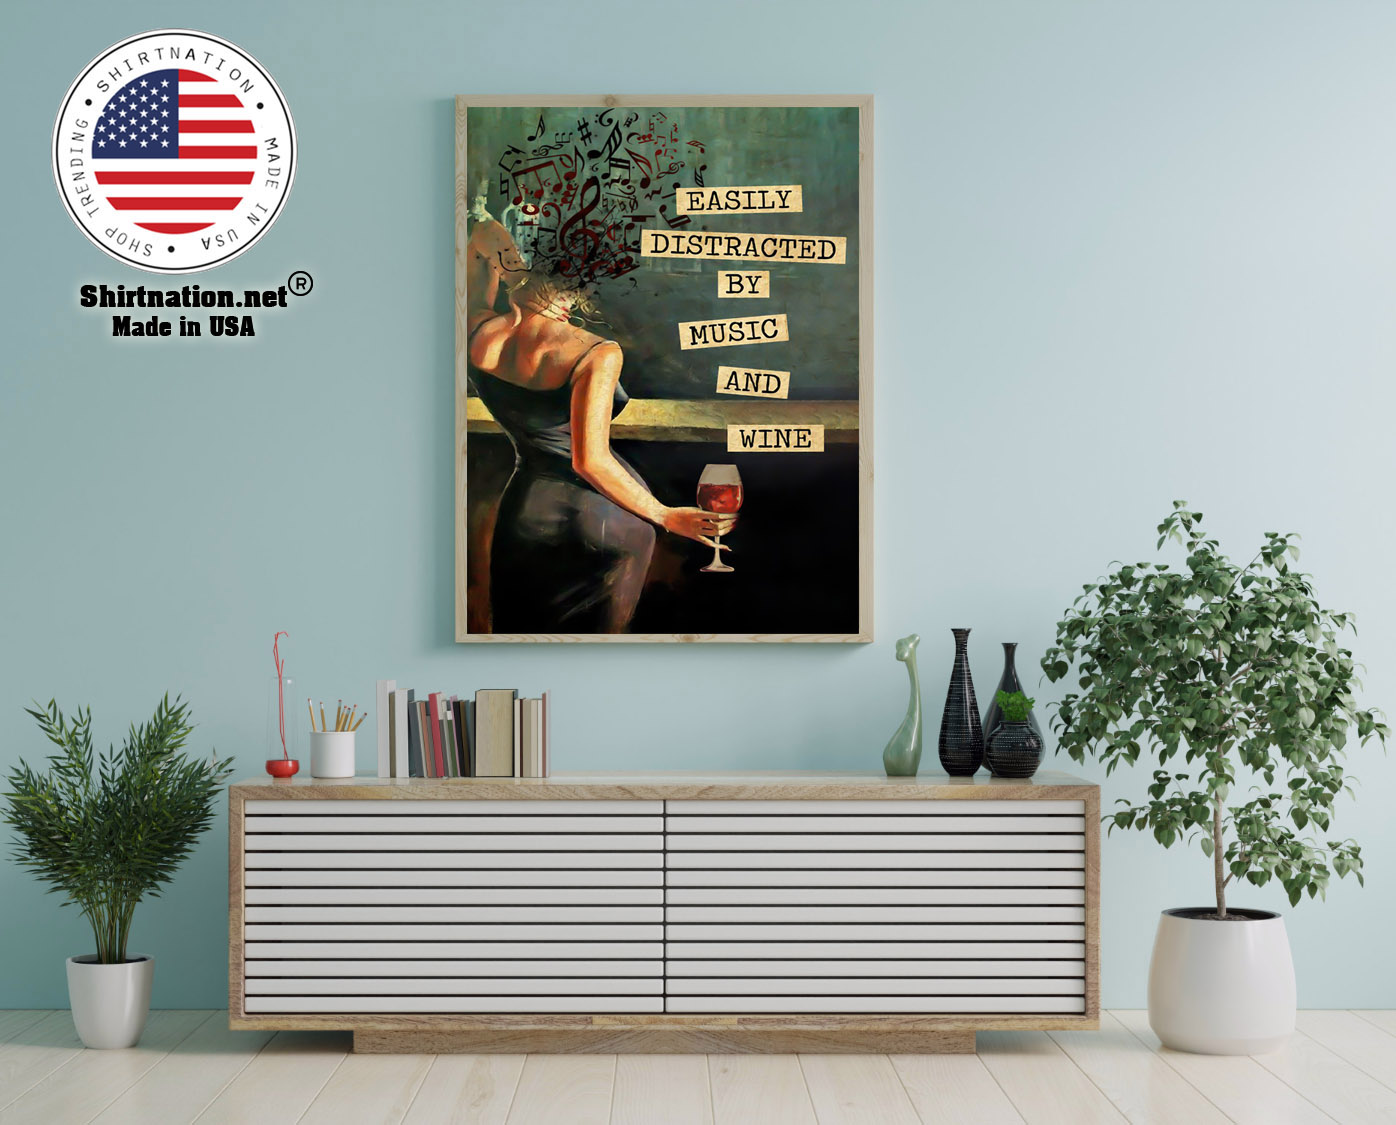 Vintage easily distracted by music and wine poster 16 1